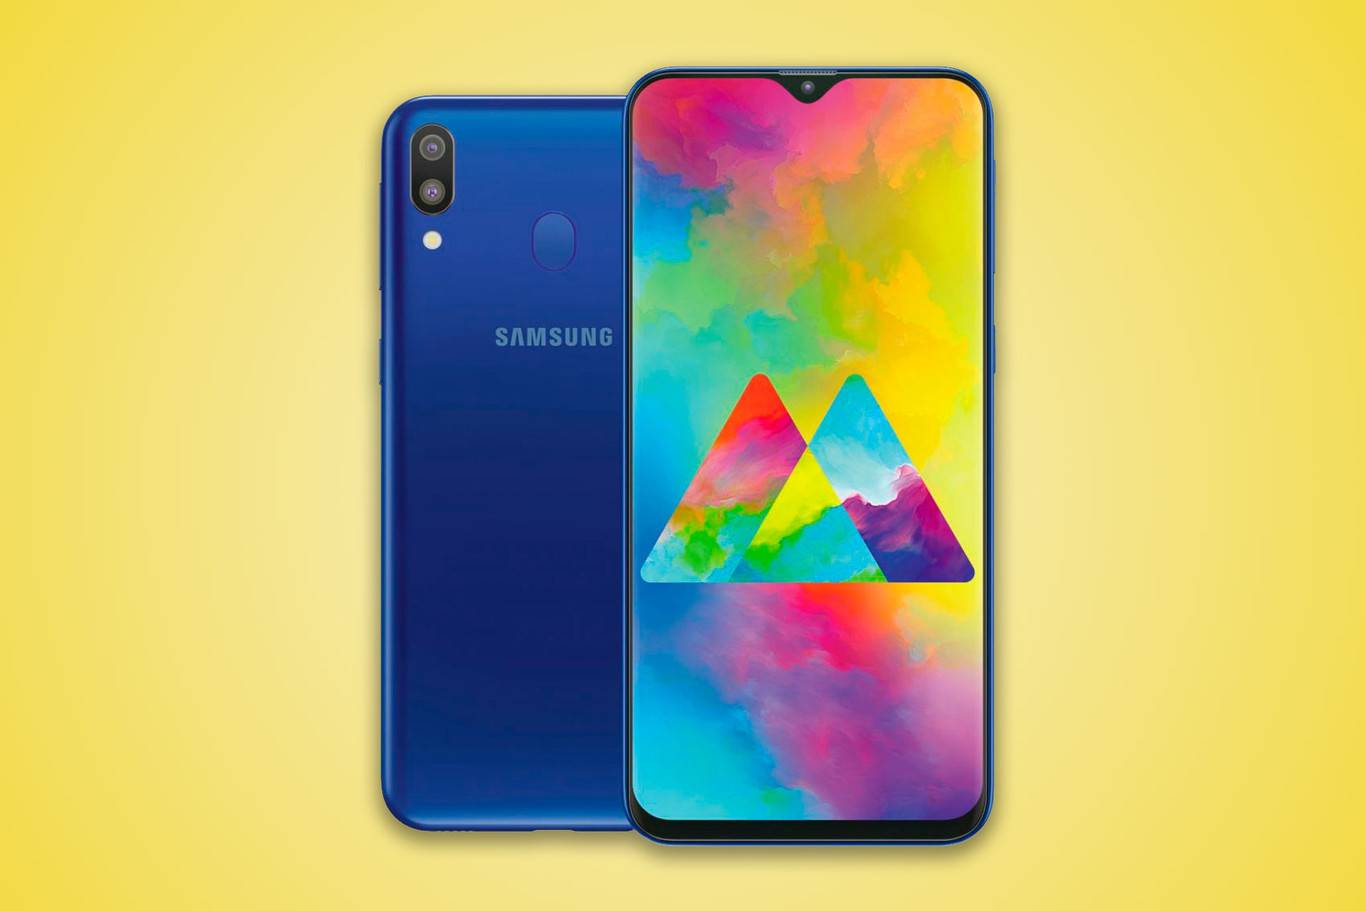 The Galaxy M10 was introduced in India: this is the new range of Samsung's entry